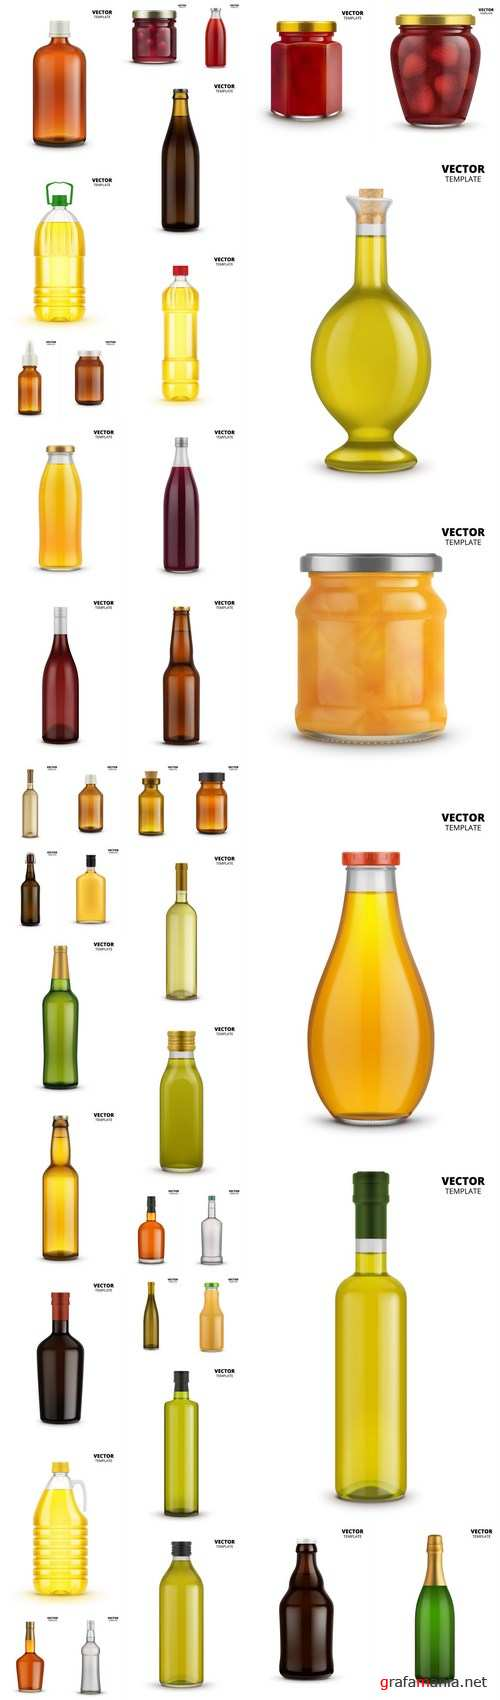 Bottle Mockup – 40 Vector